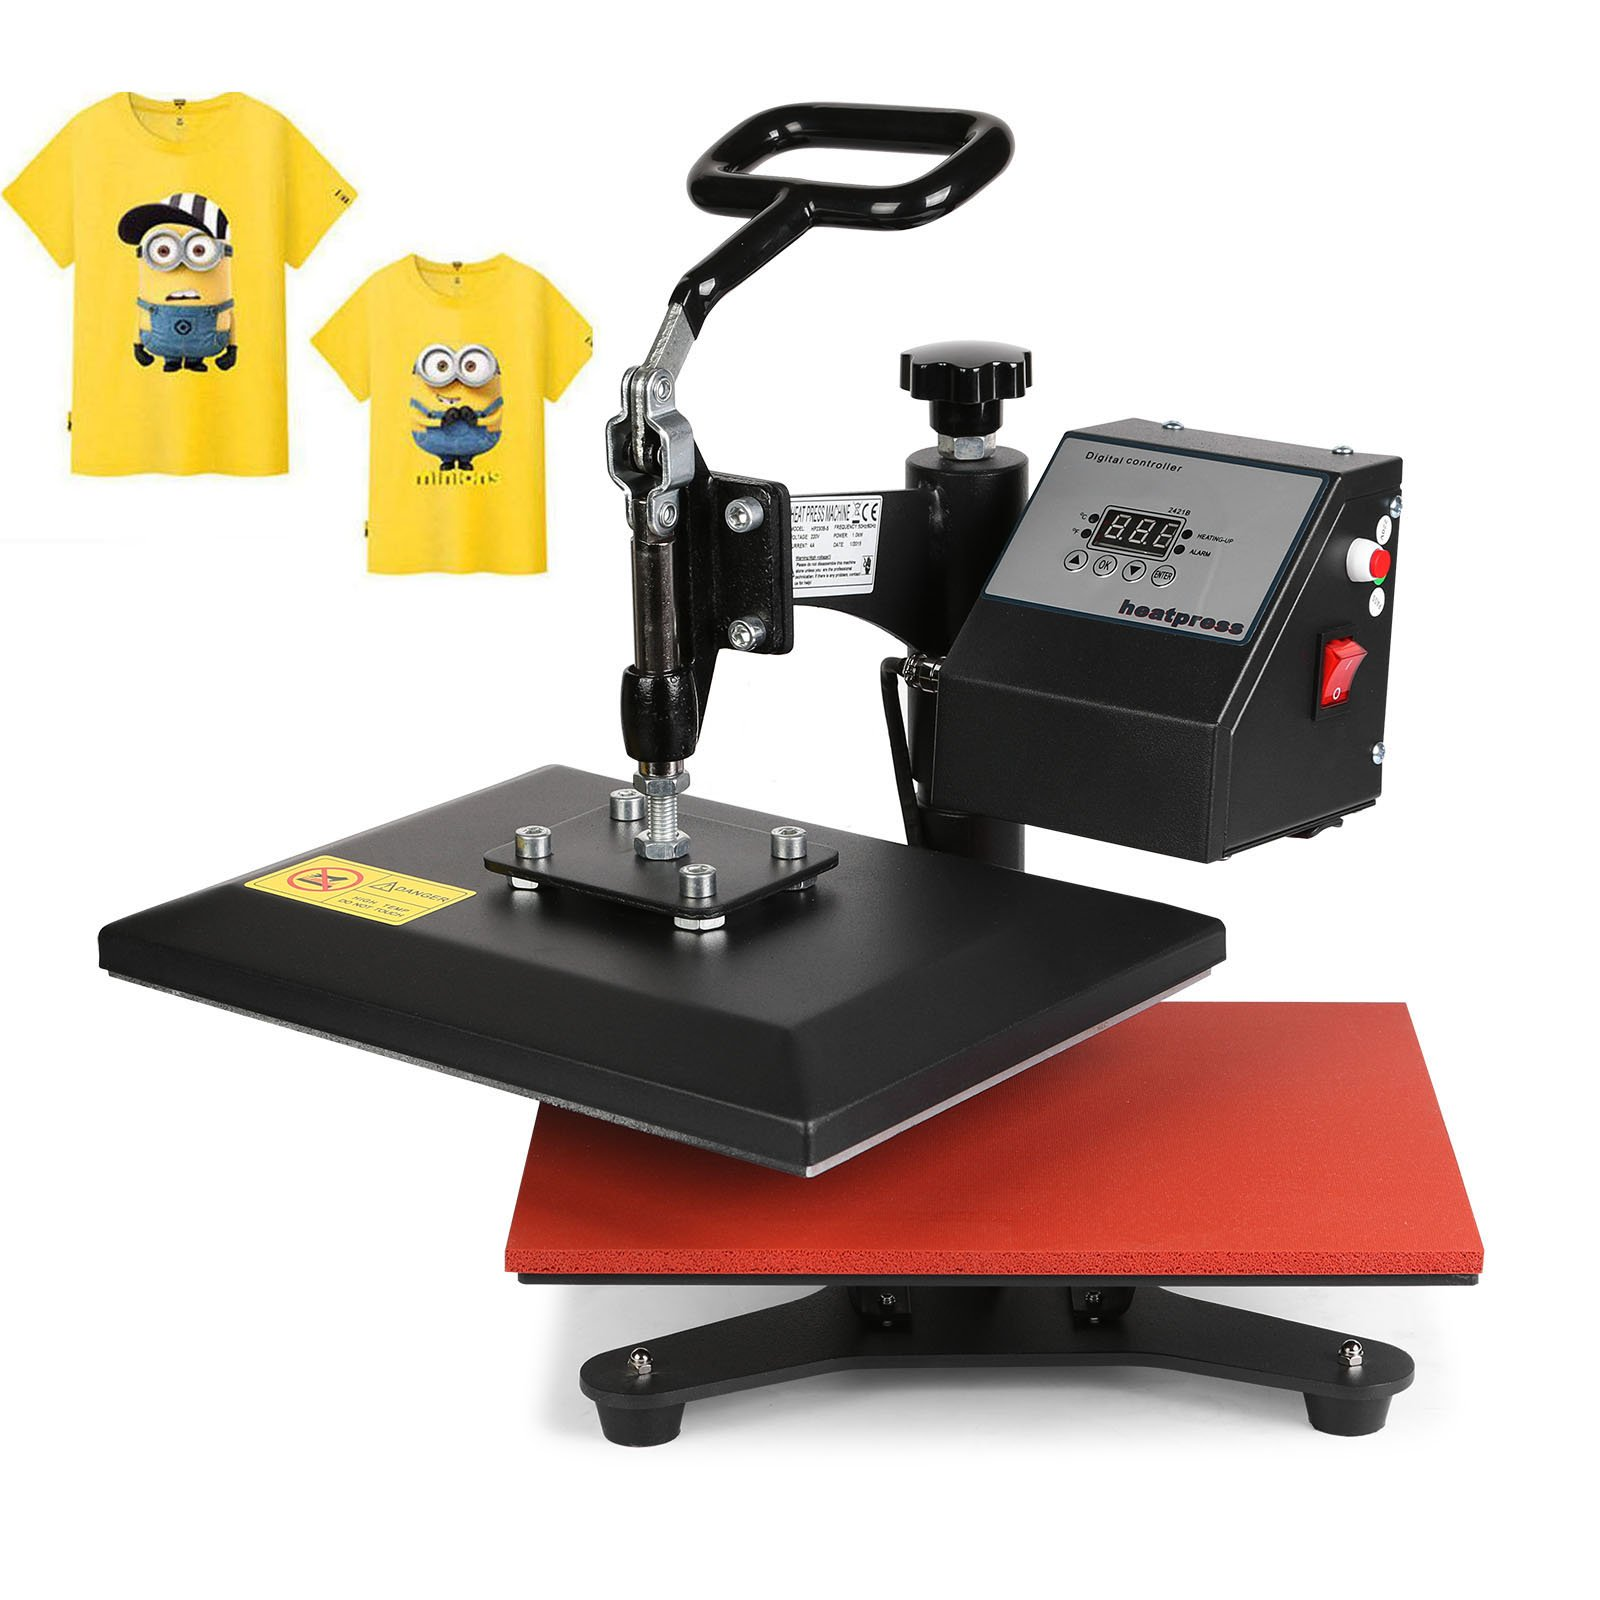 Happybuy 12x10Inch Heat Press Digital Swing Away Heat Press Machine Transfer Sublimation Heat Press Machine for T-Shirts (12x10Inch Swing Away) by Happybuy